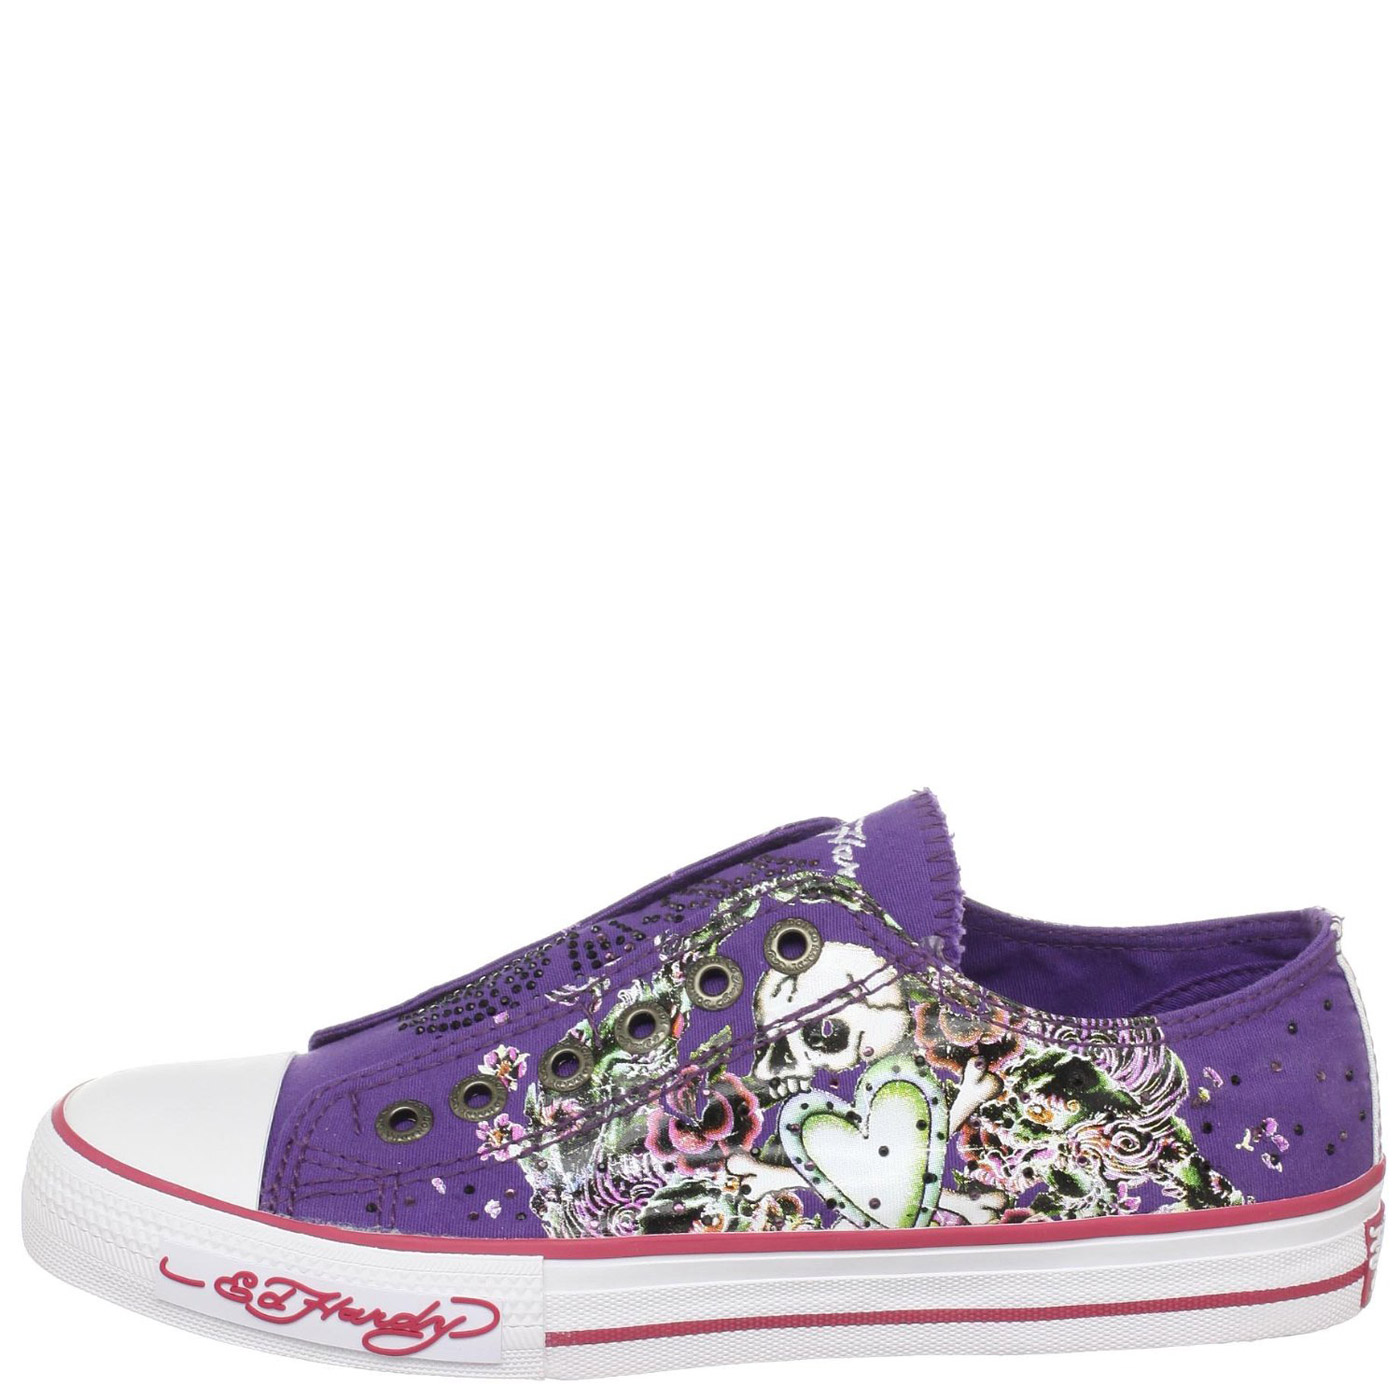 Ed Hardy Lowrise Stone Shoe for Women - Purple